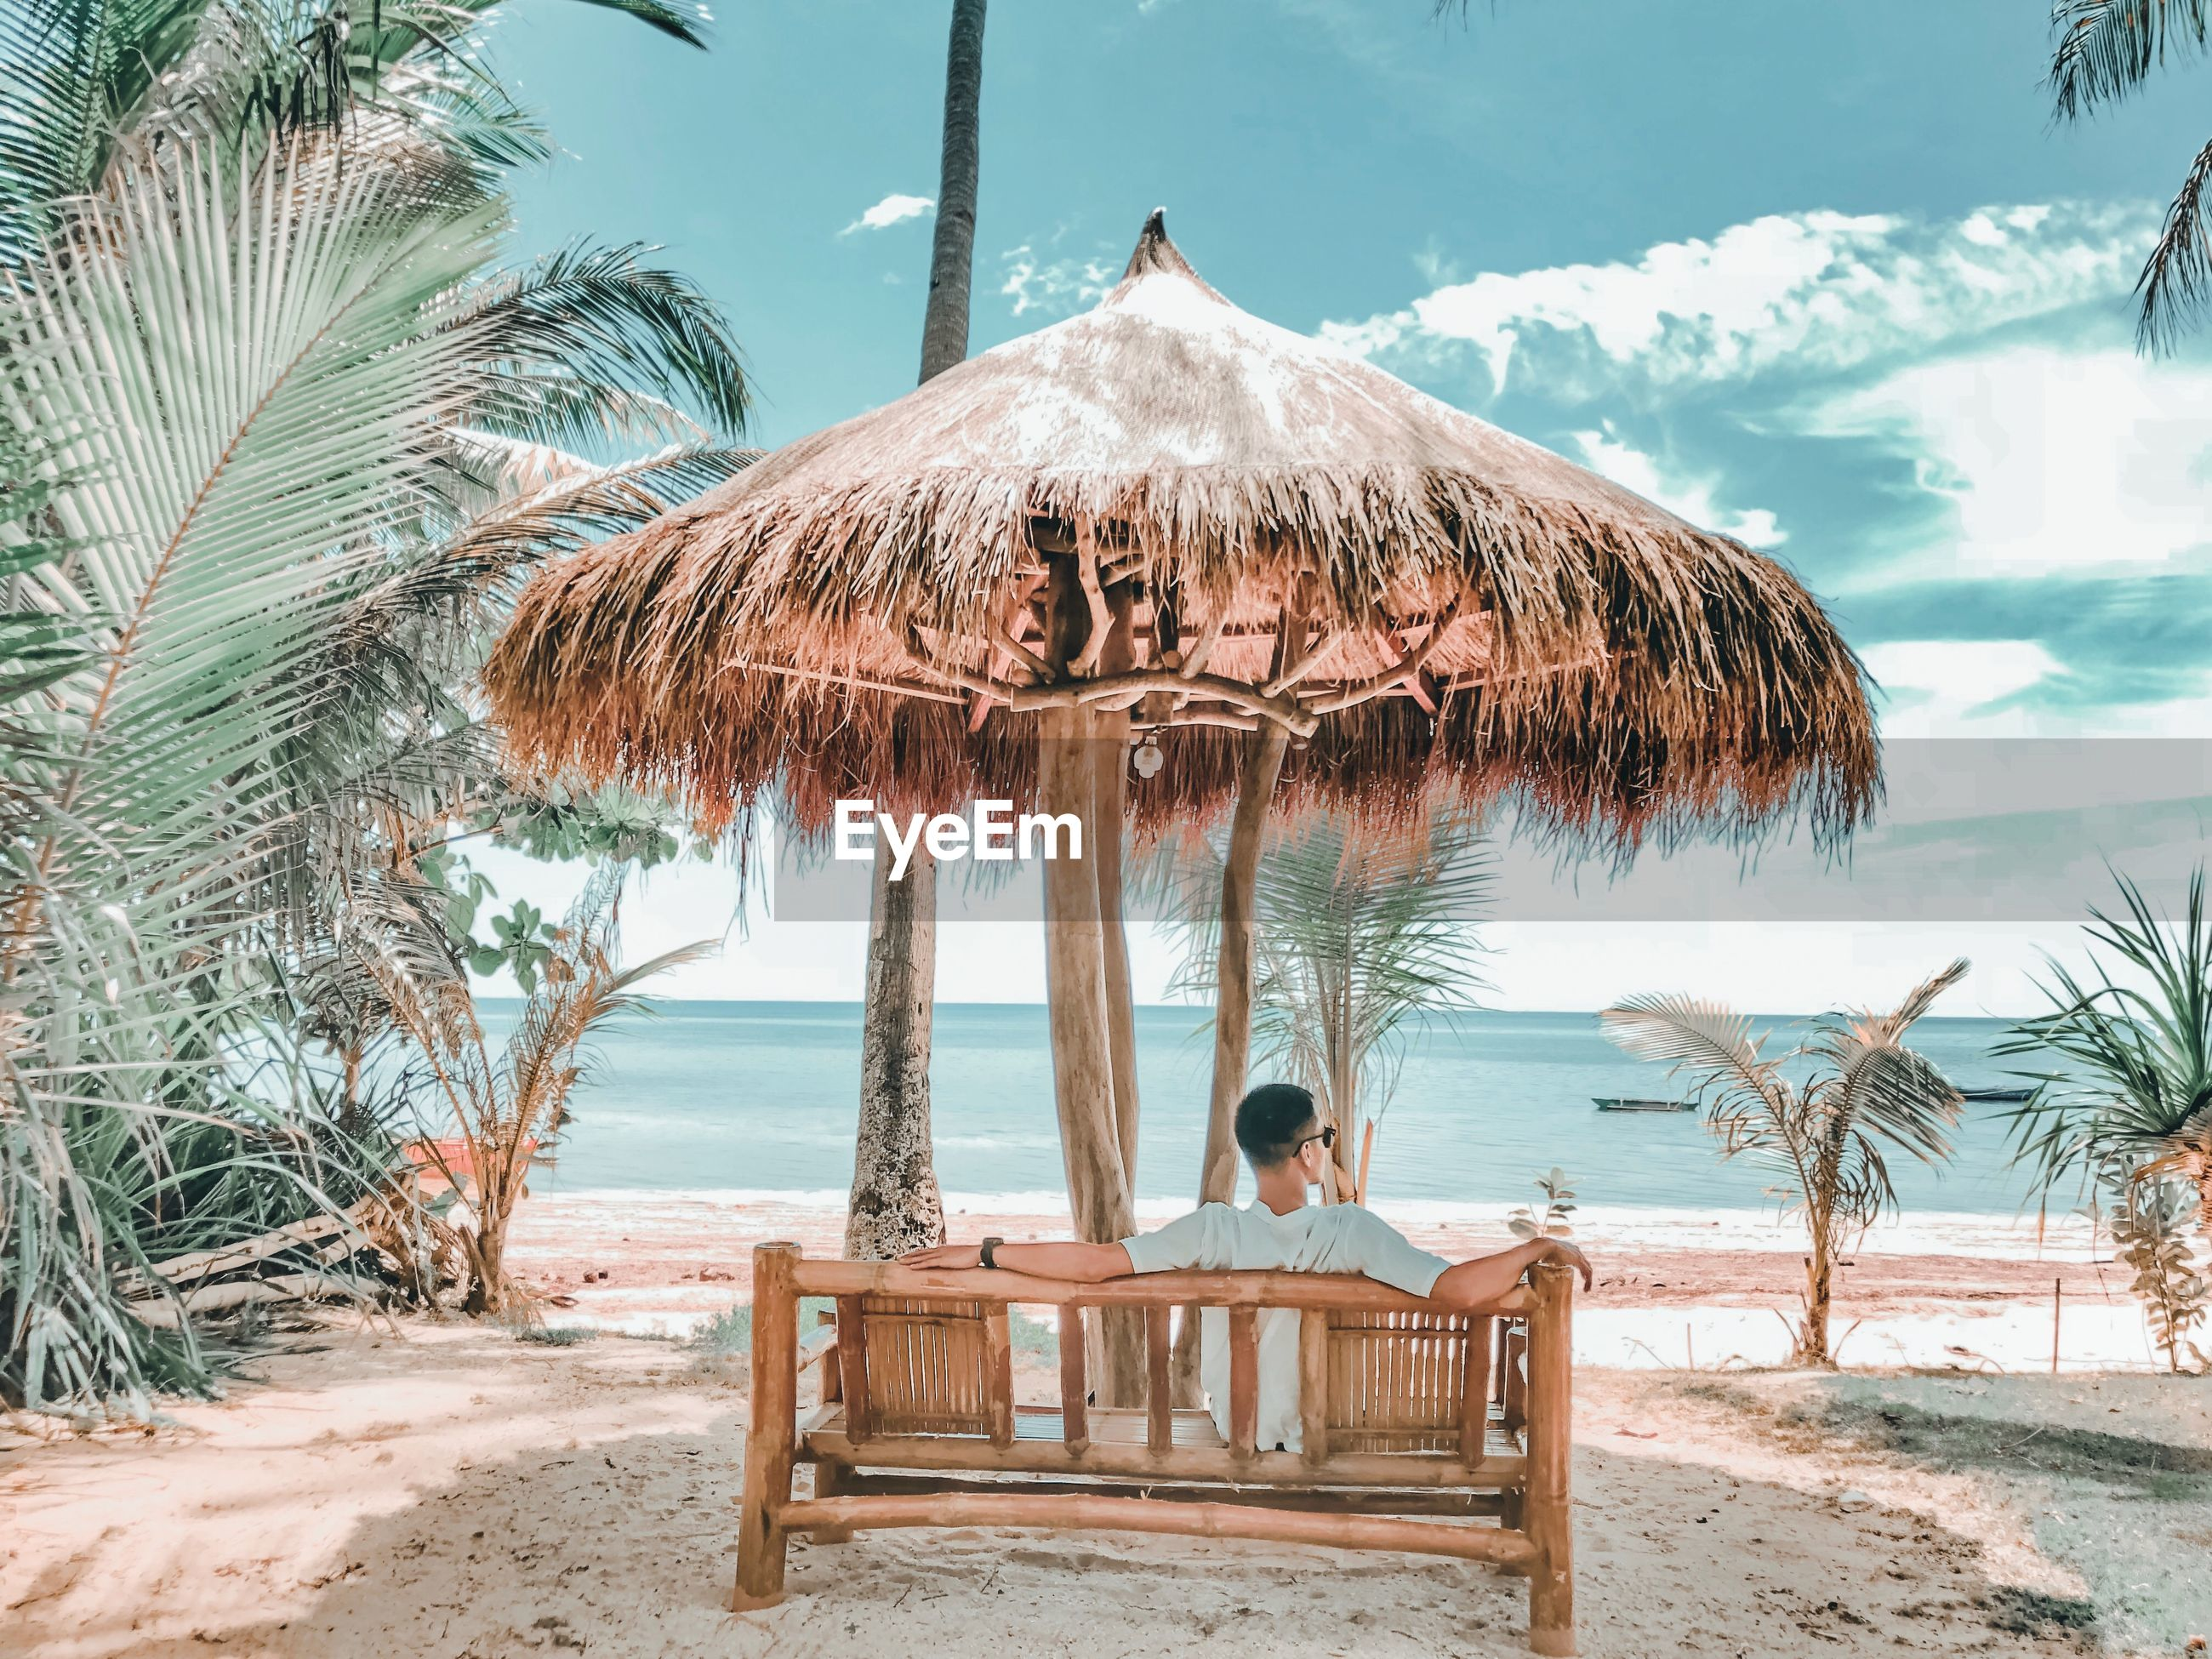 Rear view of young man relaxing on bench at beach against sky